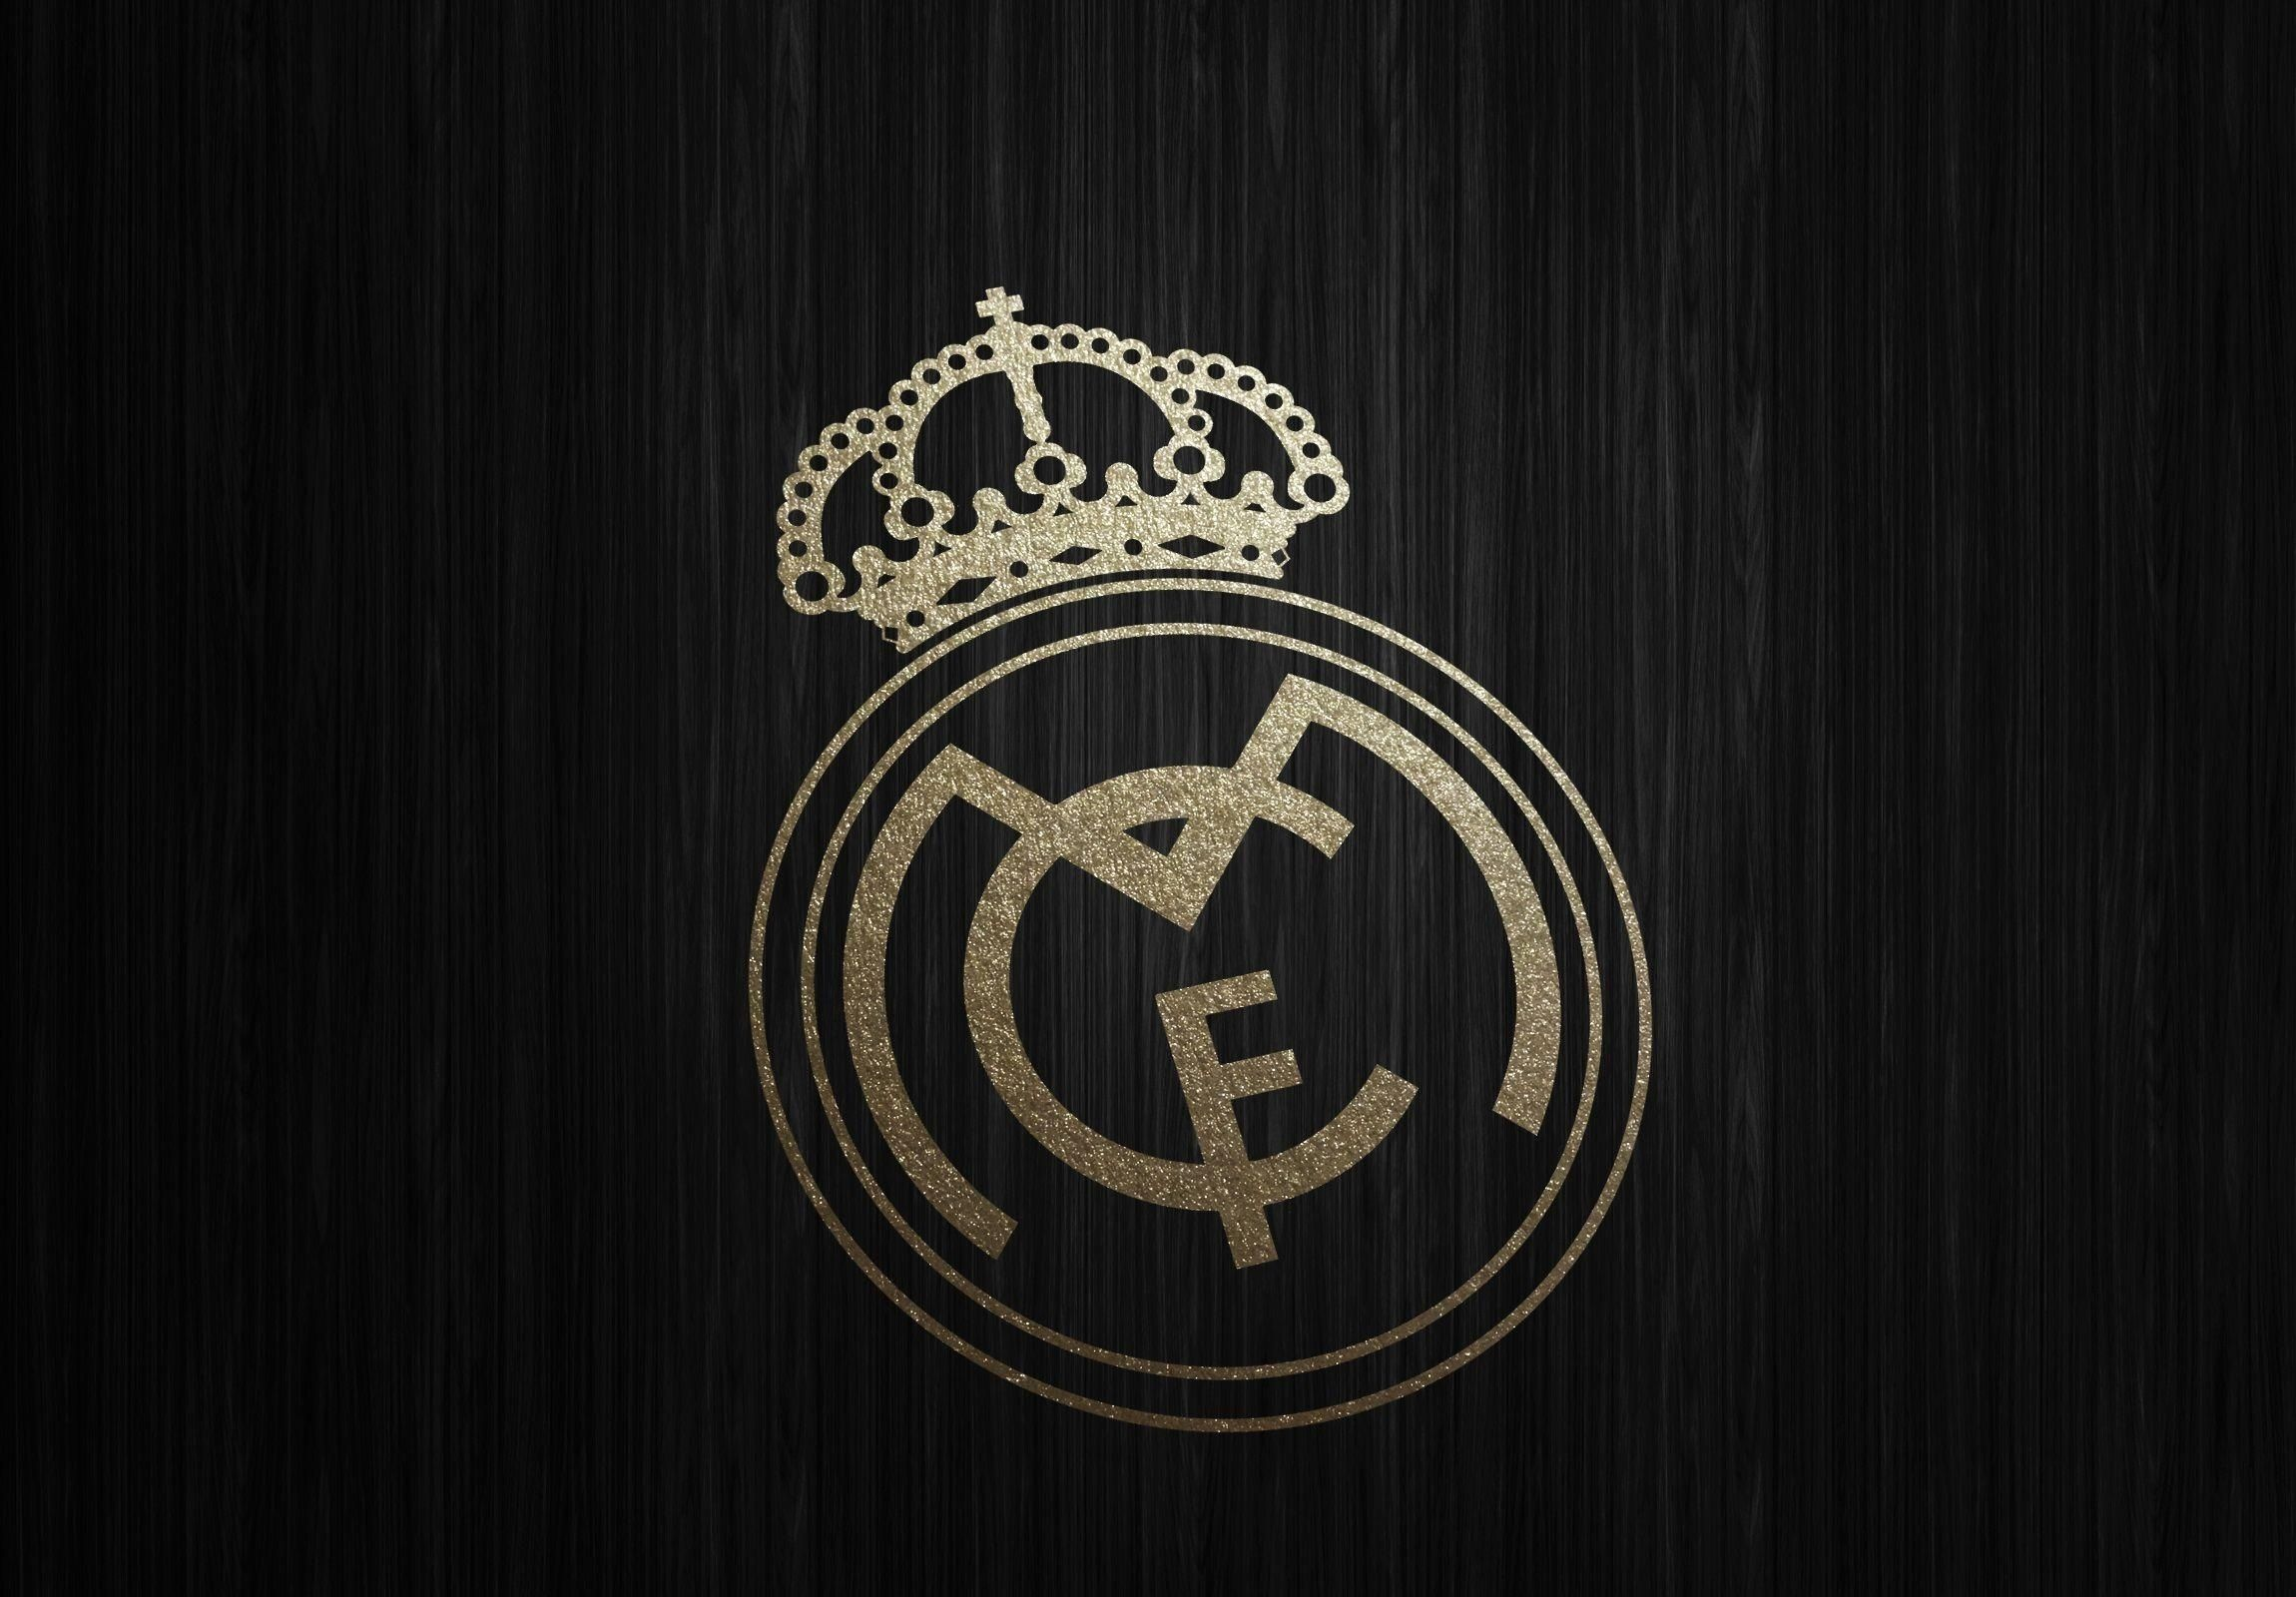 10 New Real Madrid Hd Wallpaper Full Hd 1080p For Pc